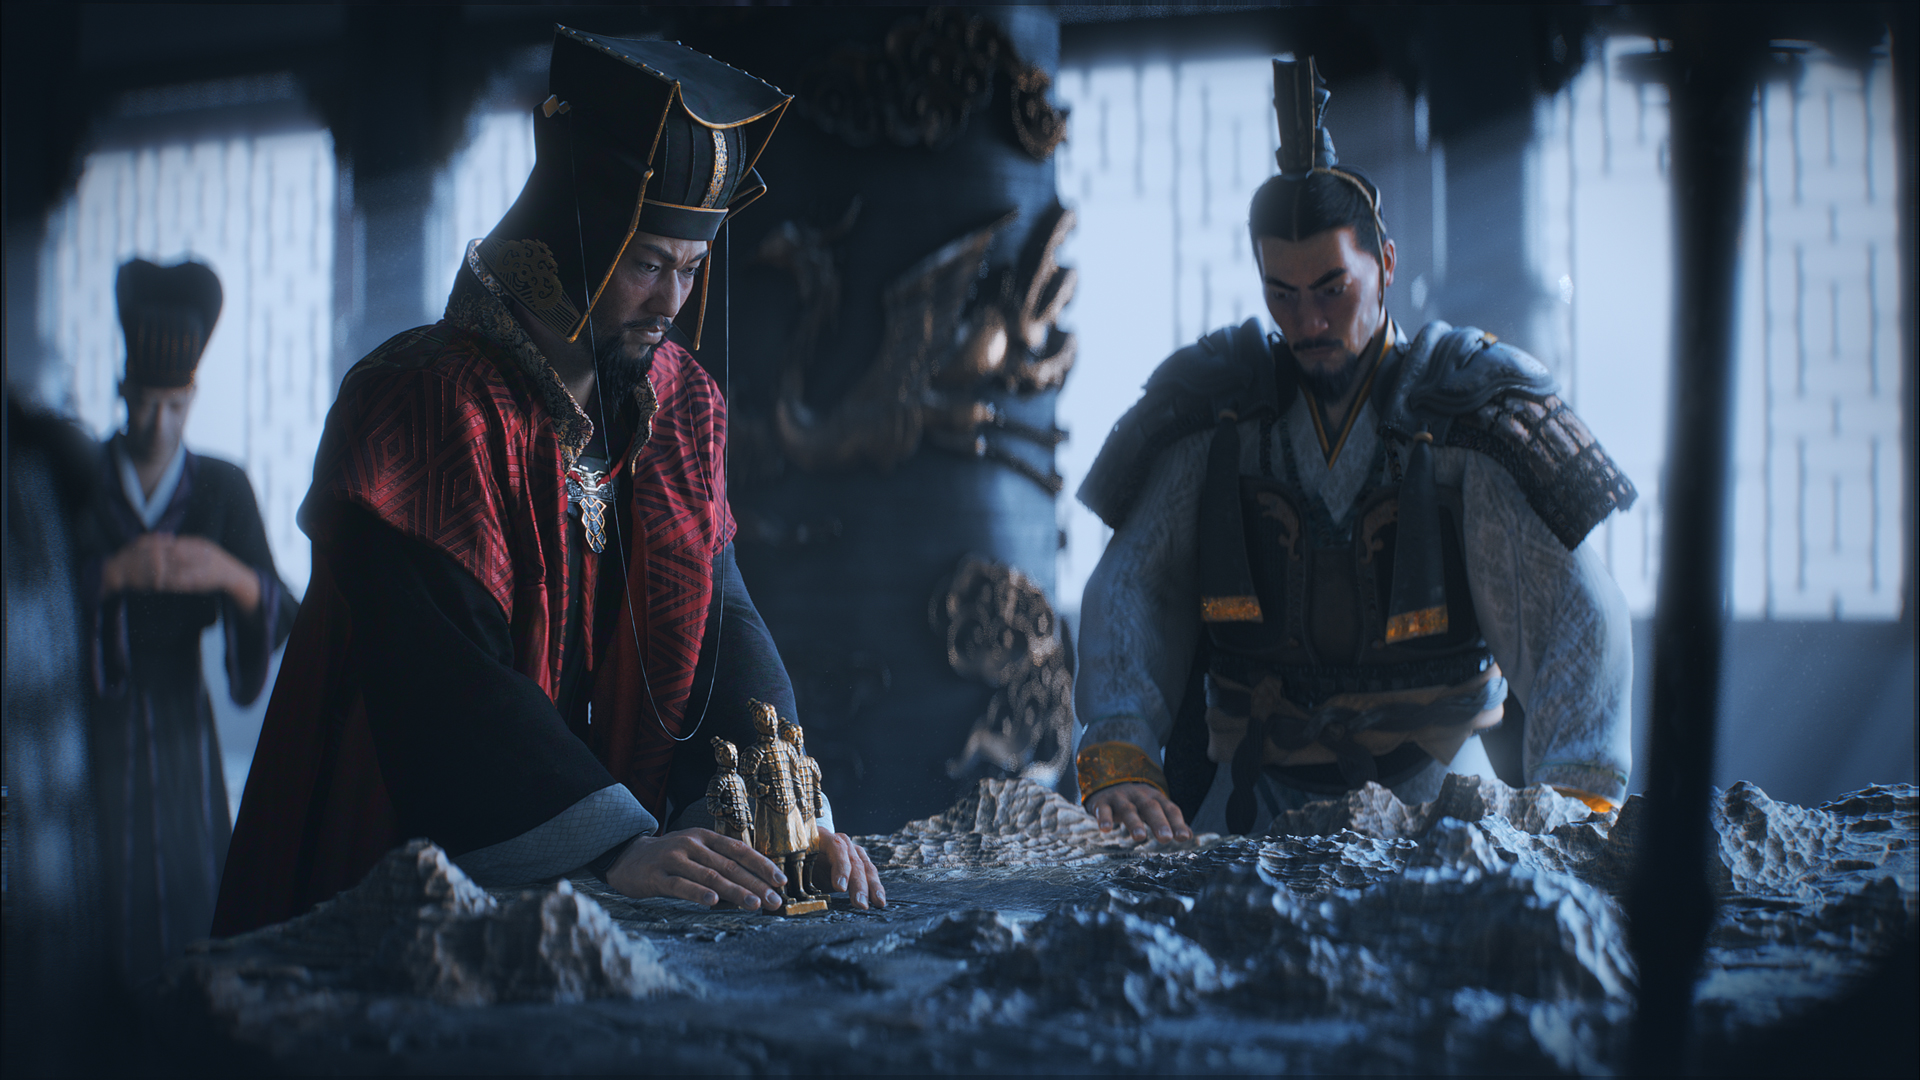 Total War: Three Kingdoms takes the strategy series to China